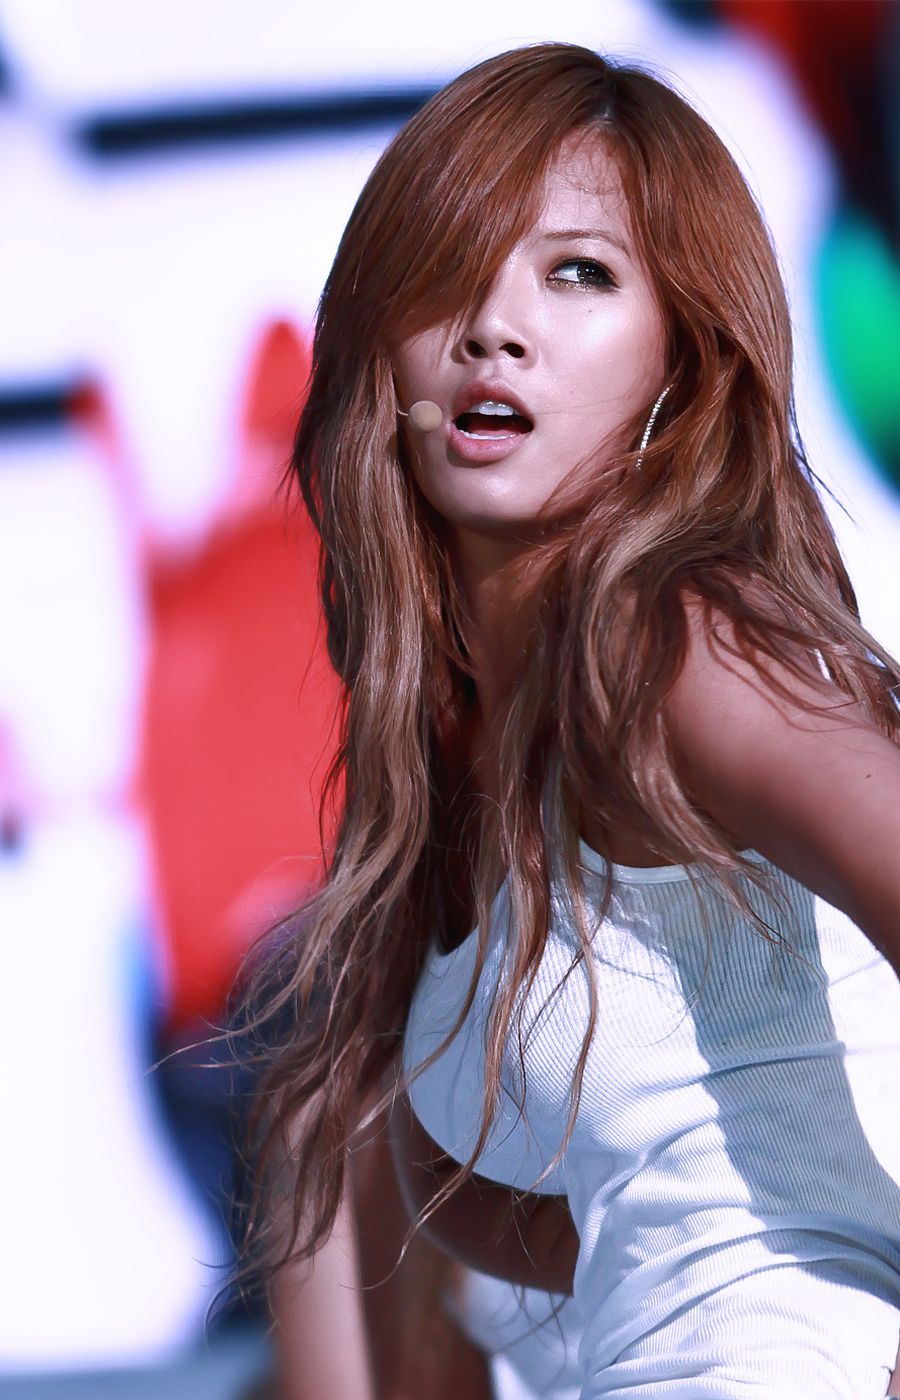 Hyuna - Kim | HD Wallpapers (High Definition) | Free ...